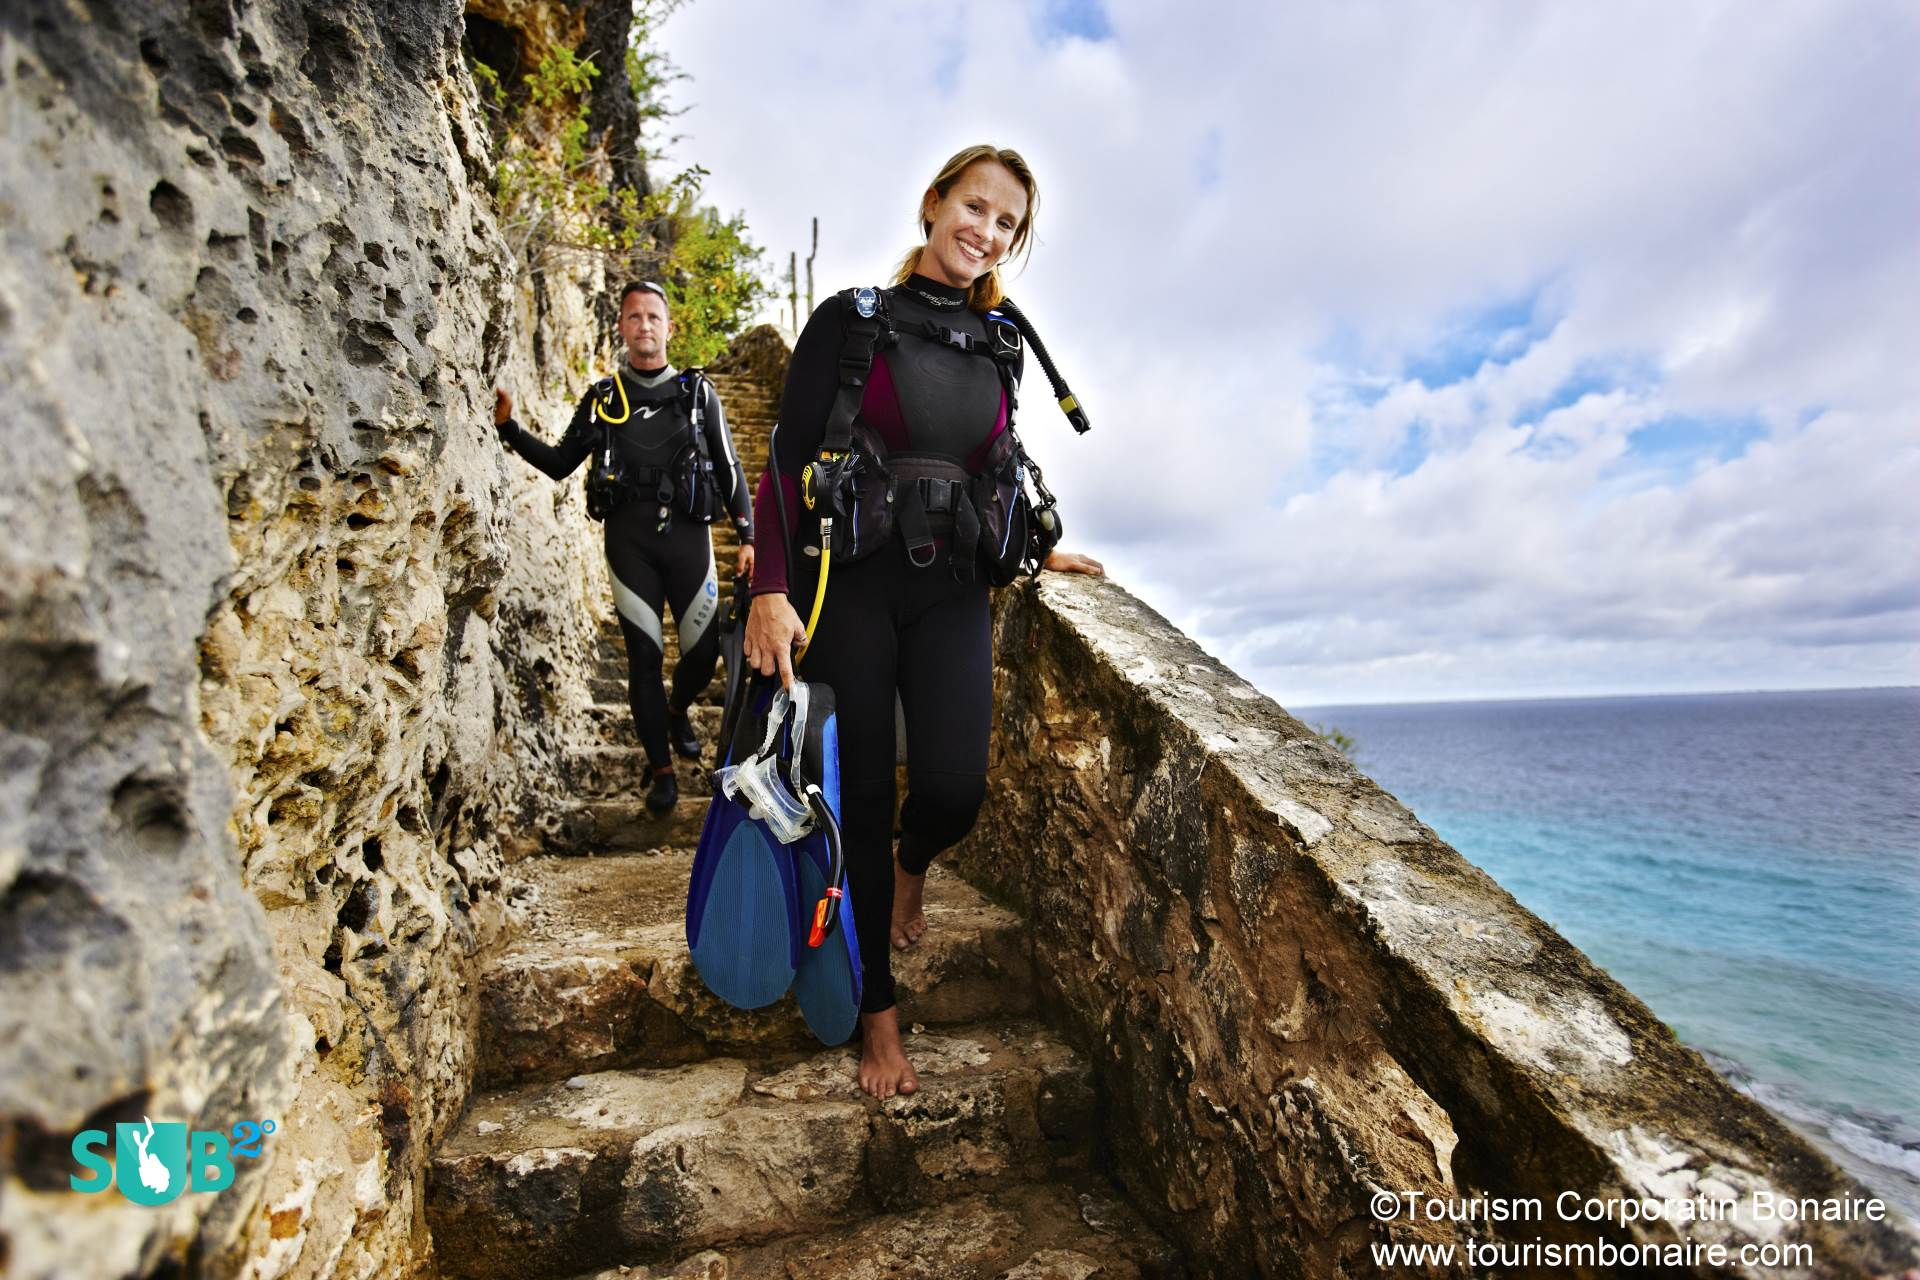 Divers carefully carry their equipment down the 72 steps to begin their dive. Shore entries and exits are clearly indicated, with bright yellow rocks used as markers.